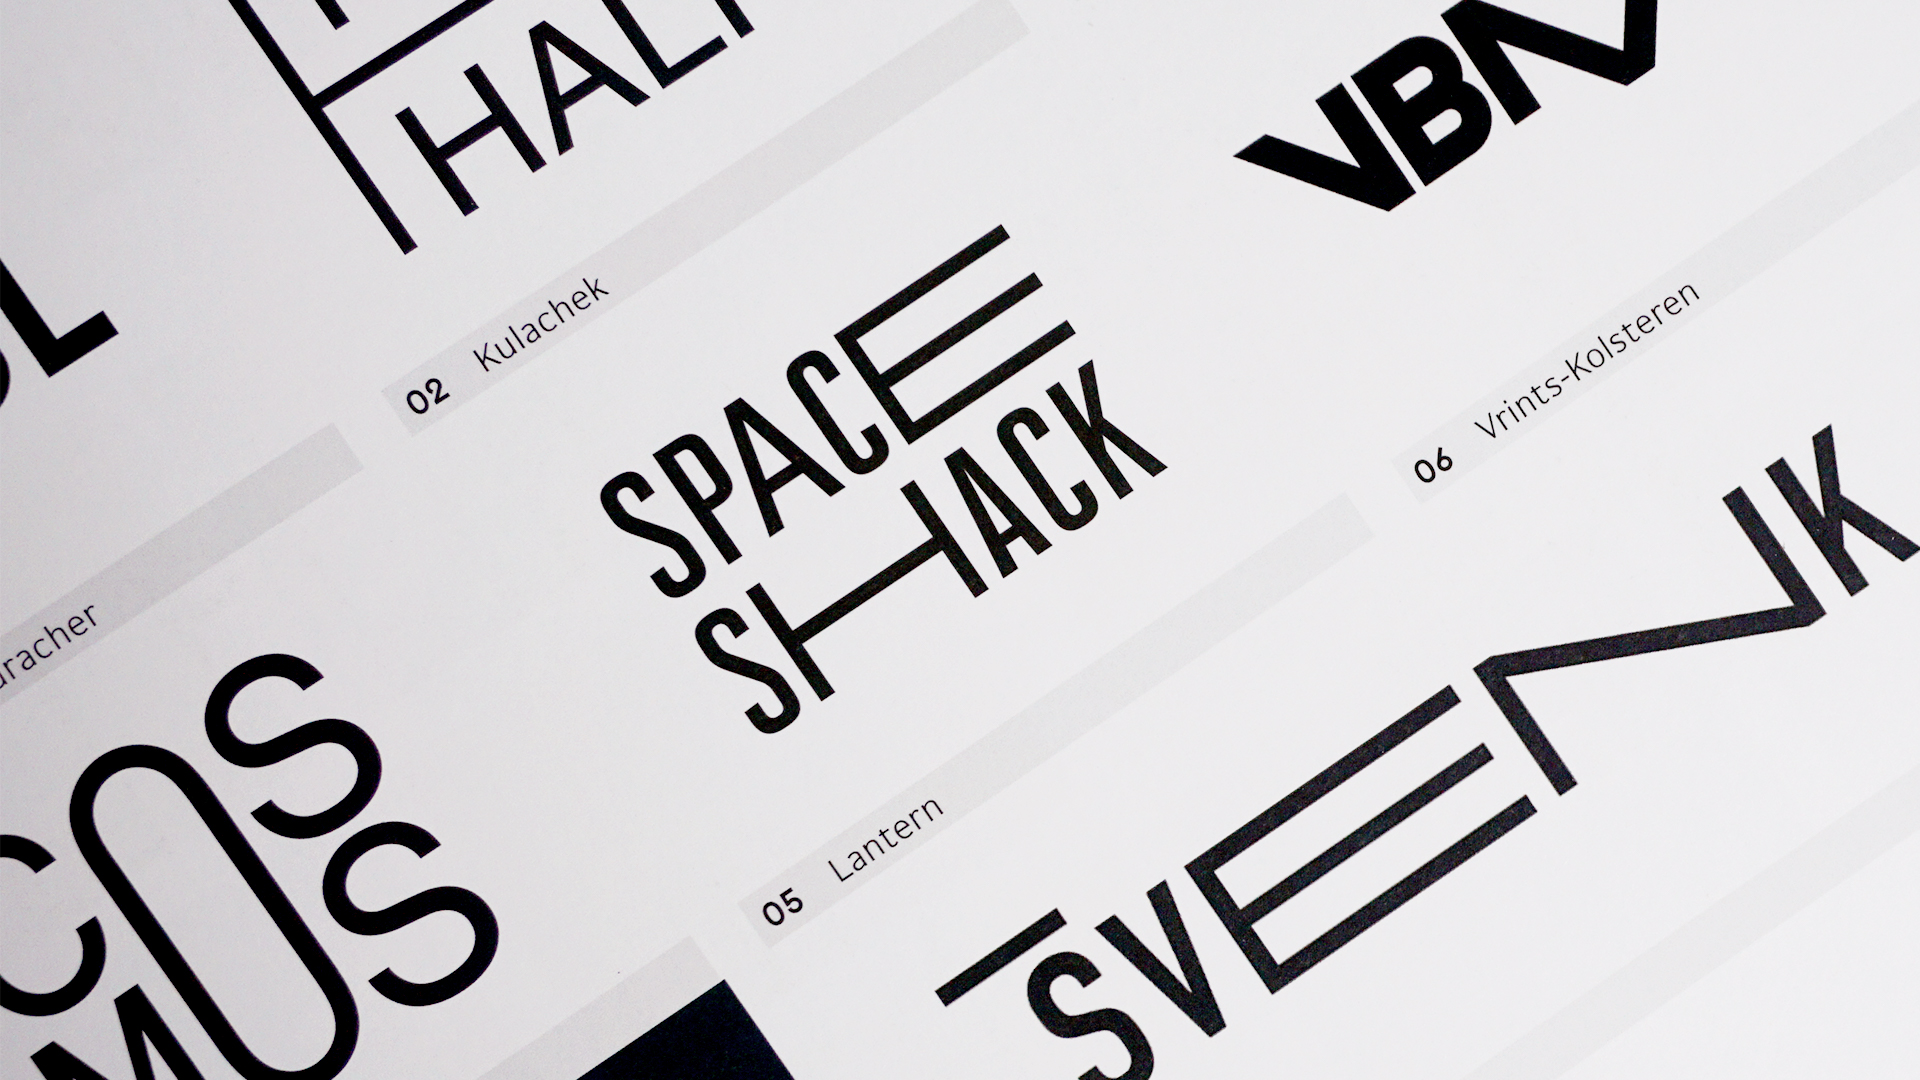 Identity for Space Shack. View the full project  here .